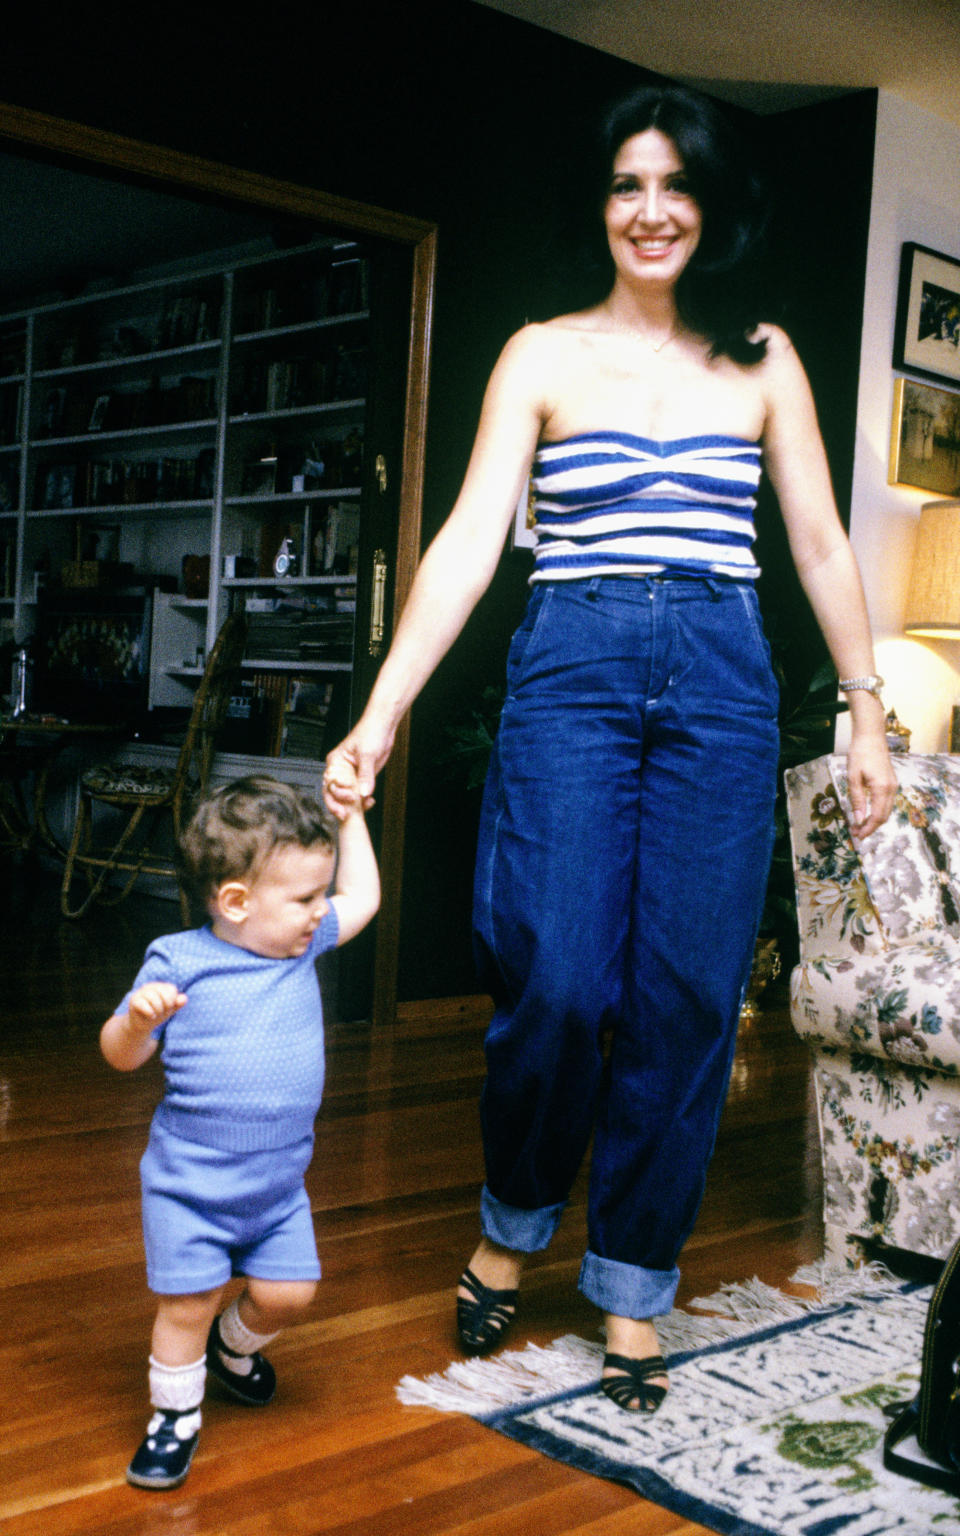 The Spanish actress Concha Velasco with her son, 27th June 1980, Madrid, Spain. (Photo by Gianni Ferrari/Cover/Getty Images).